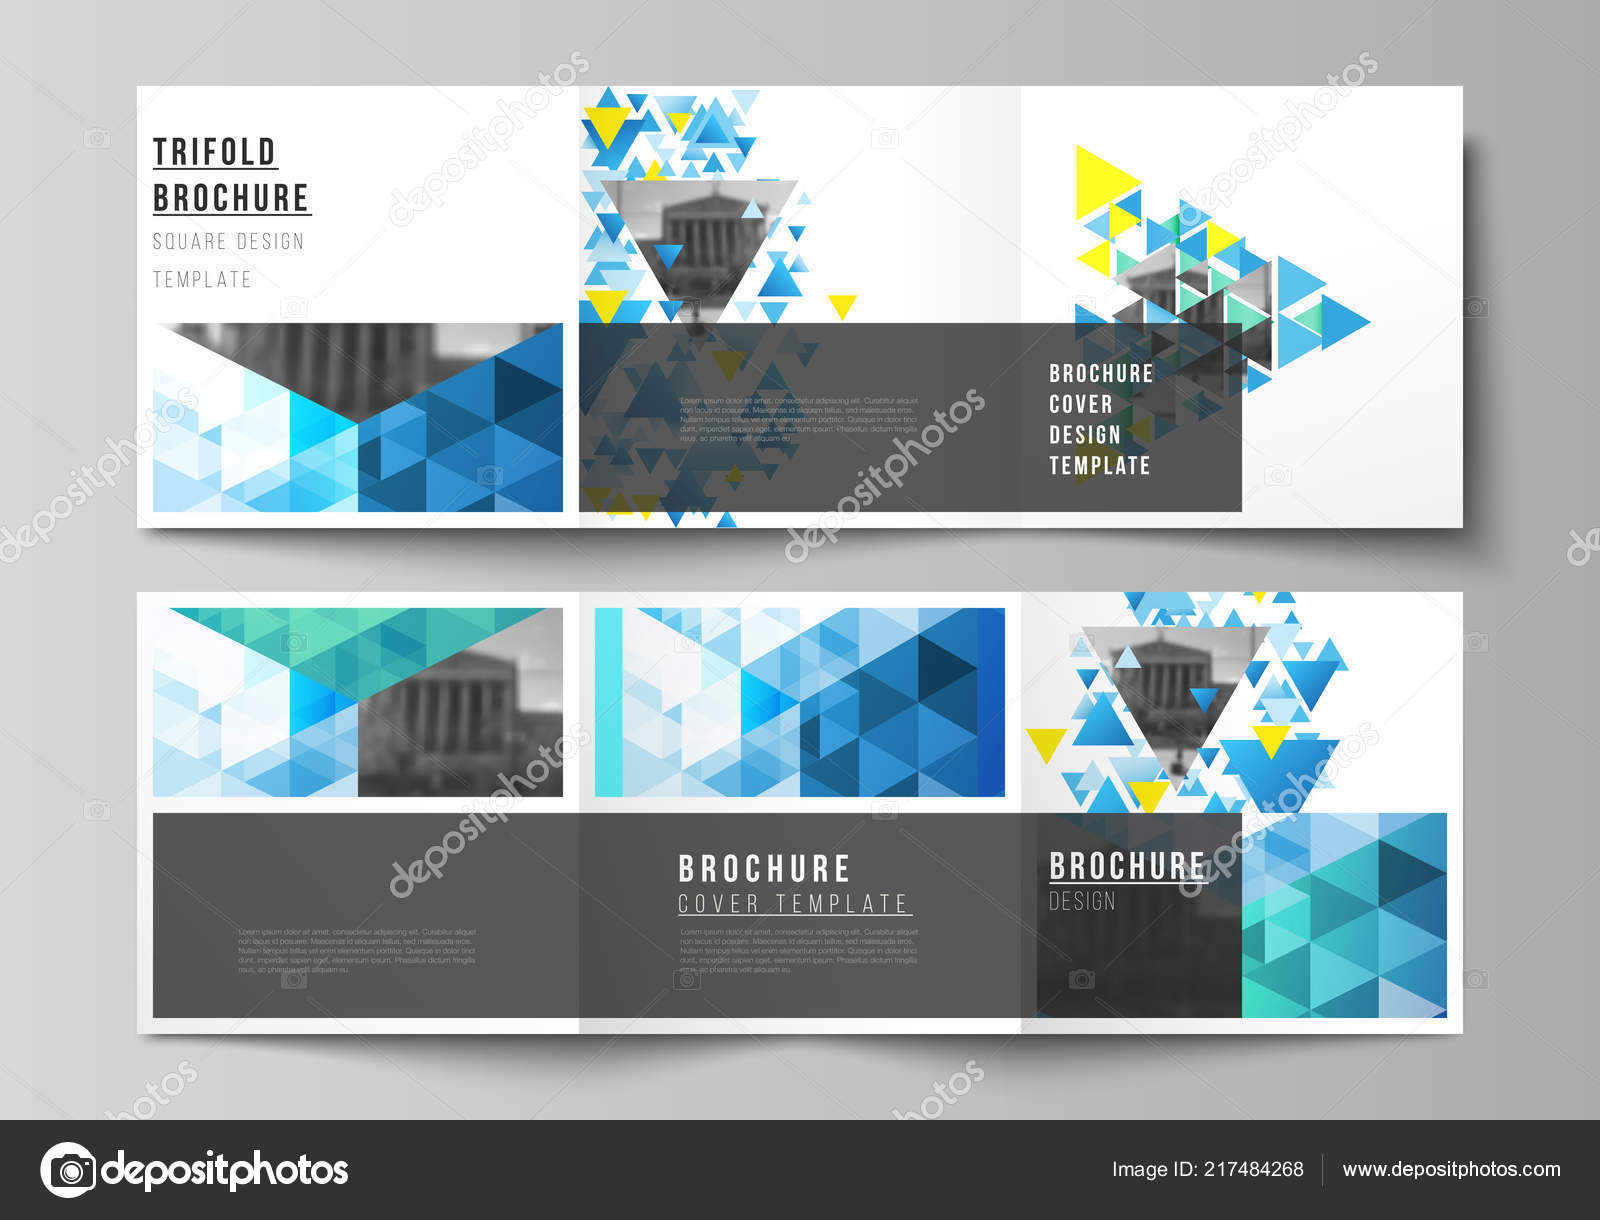 the minimal vector editable layout of square format covers design templates for trifold brochure flyer